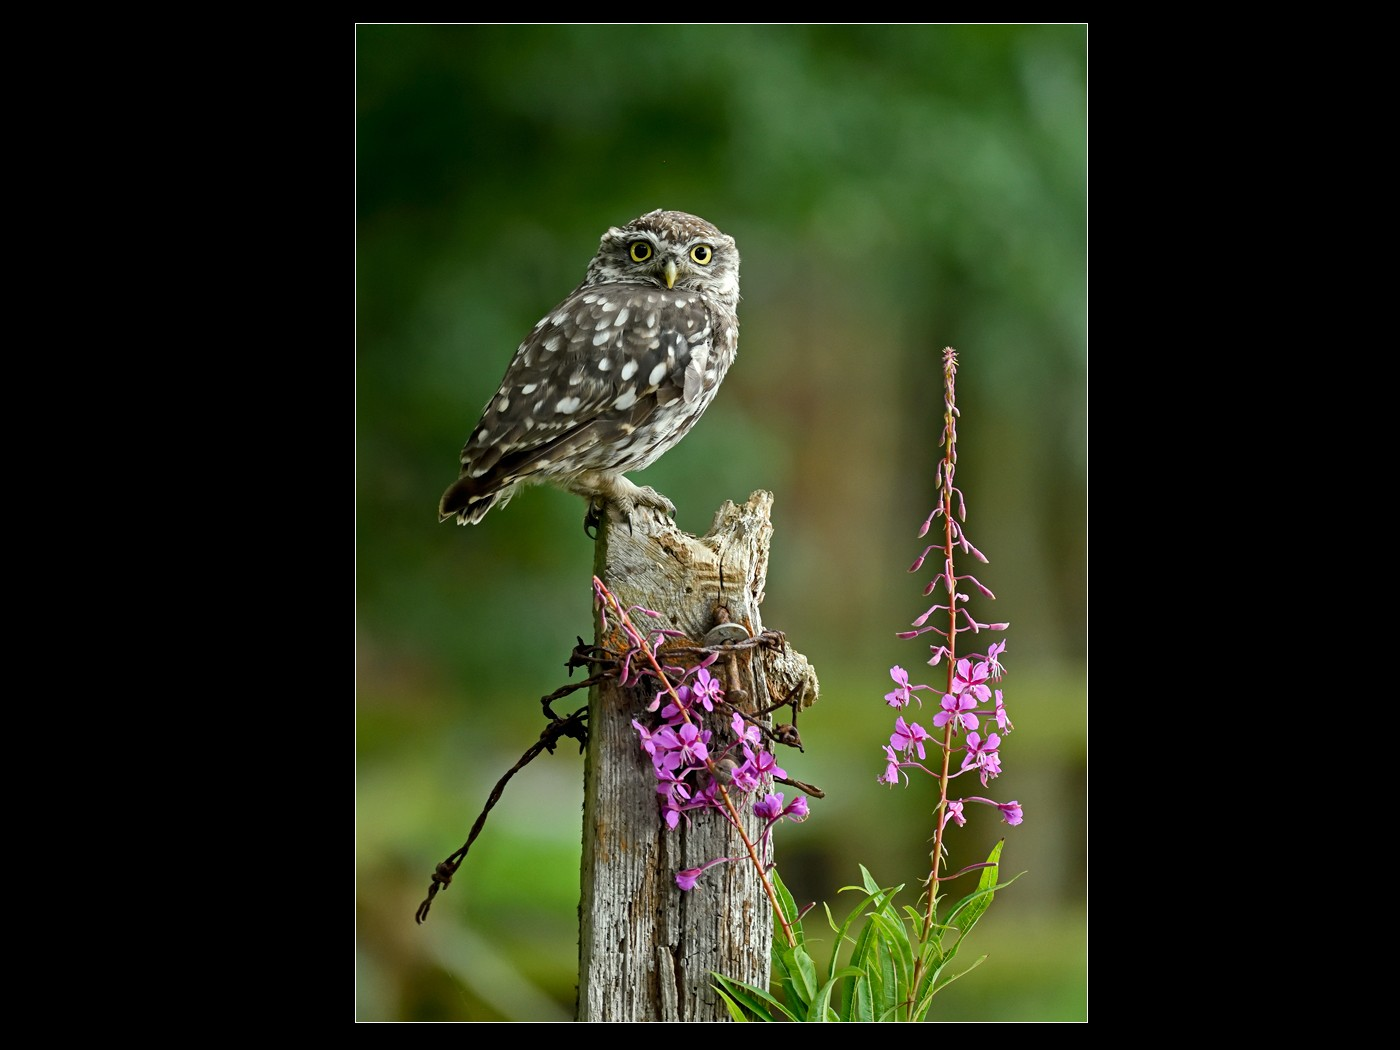 Wild Little Owl